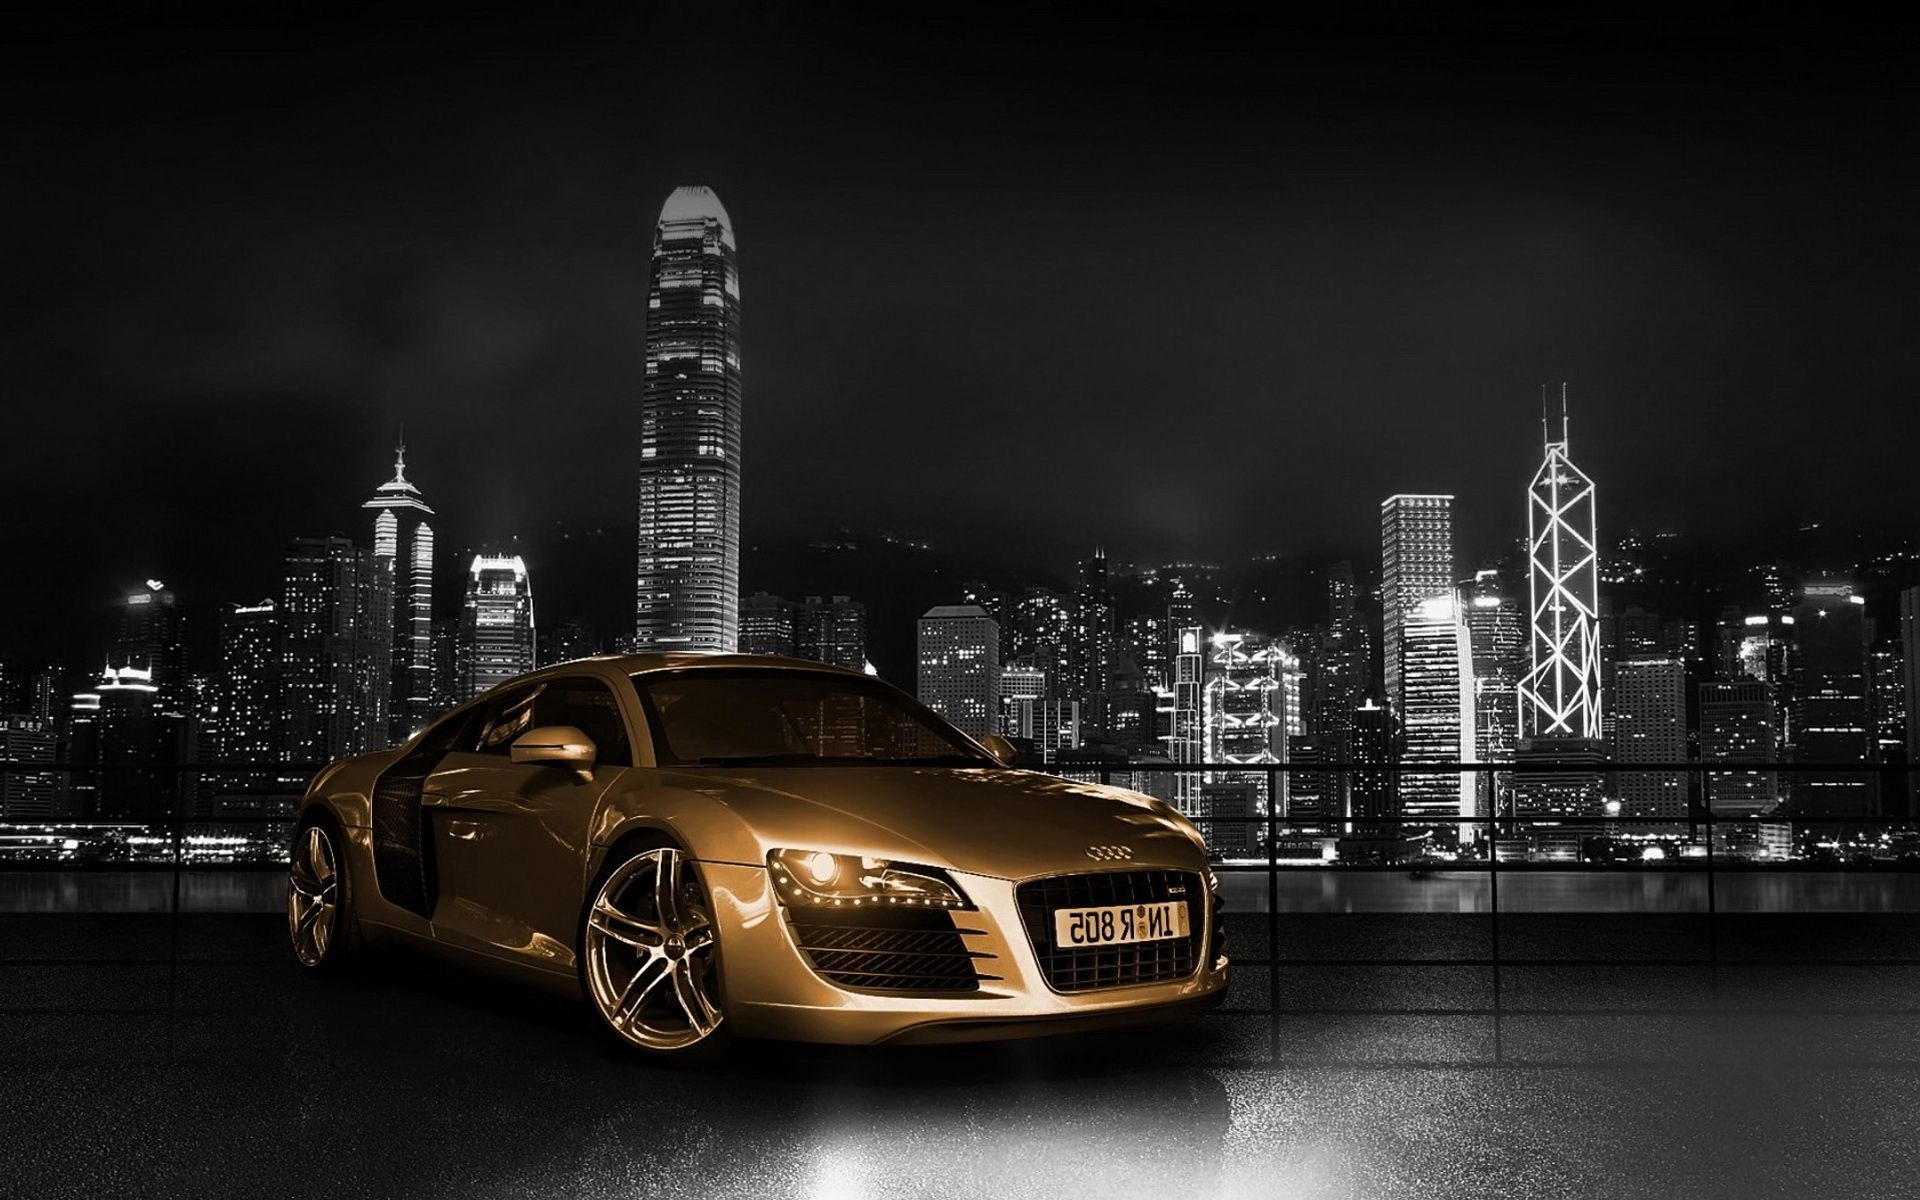 tuning city car street travel monochrome skyline urban architecture downtown cityscape sunset building light road